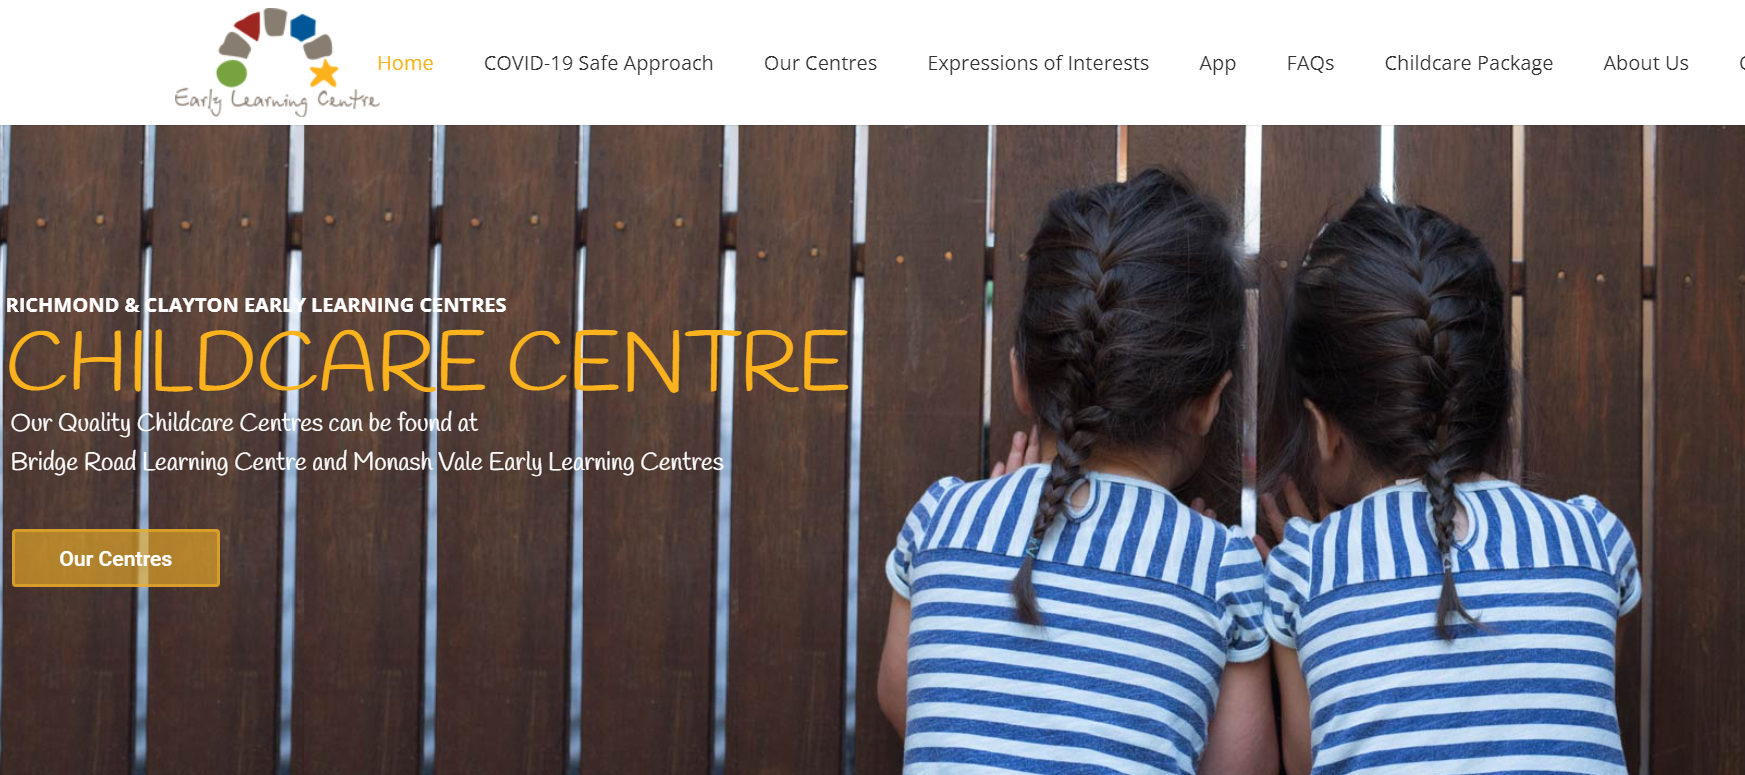 bridge road early learning centre melbourne